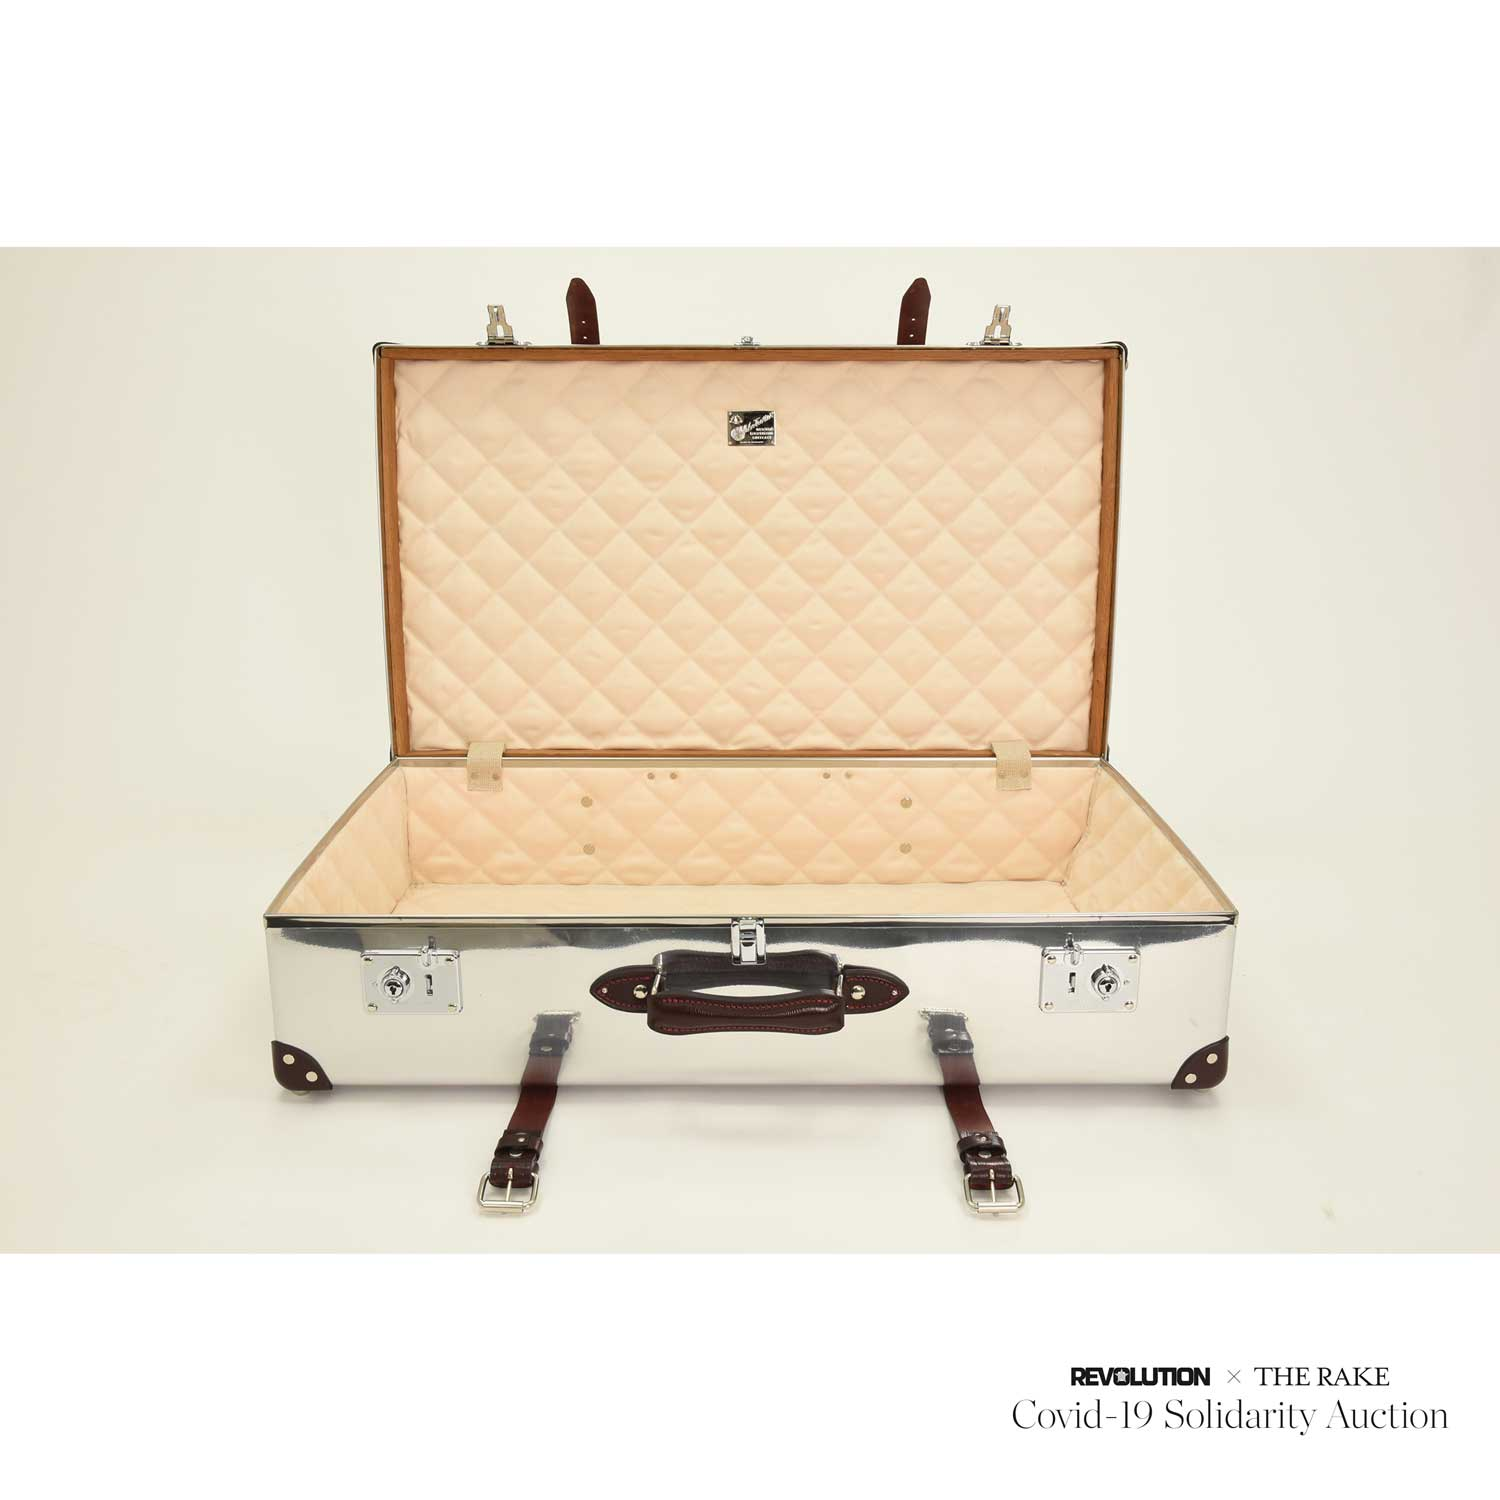 Globe-Trotter Aluminium Travel Case for Revolution x The Rake Covid-19 Solidarity Auction